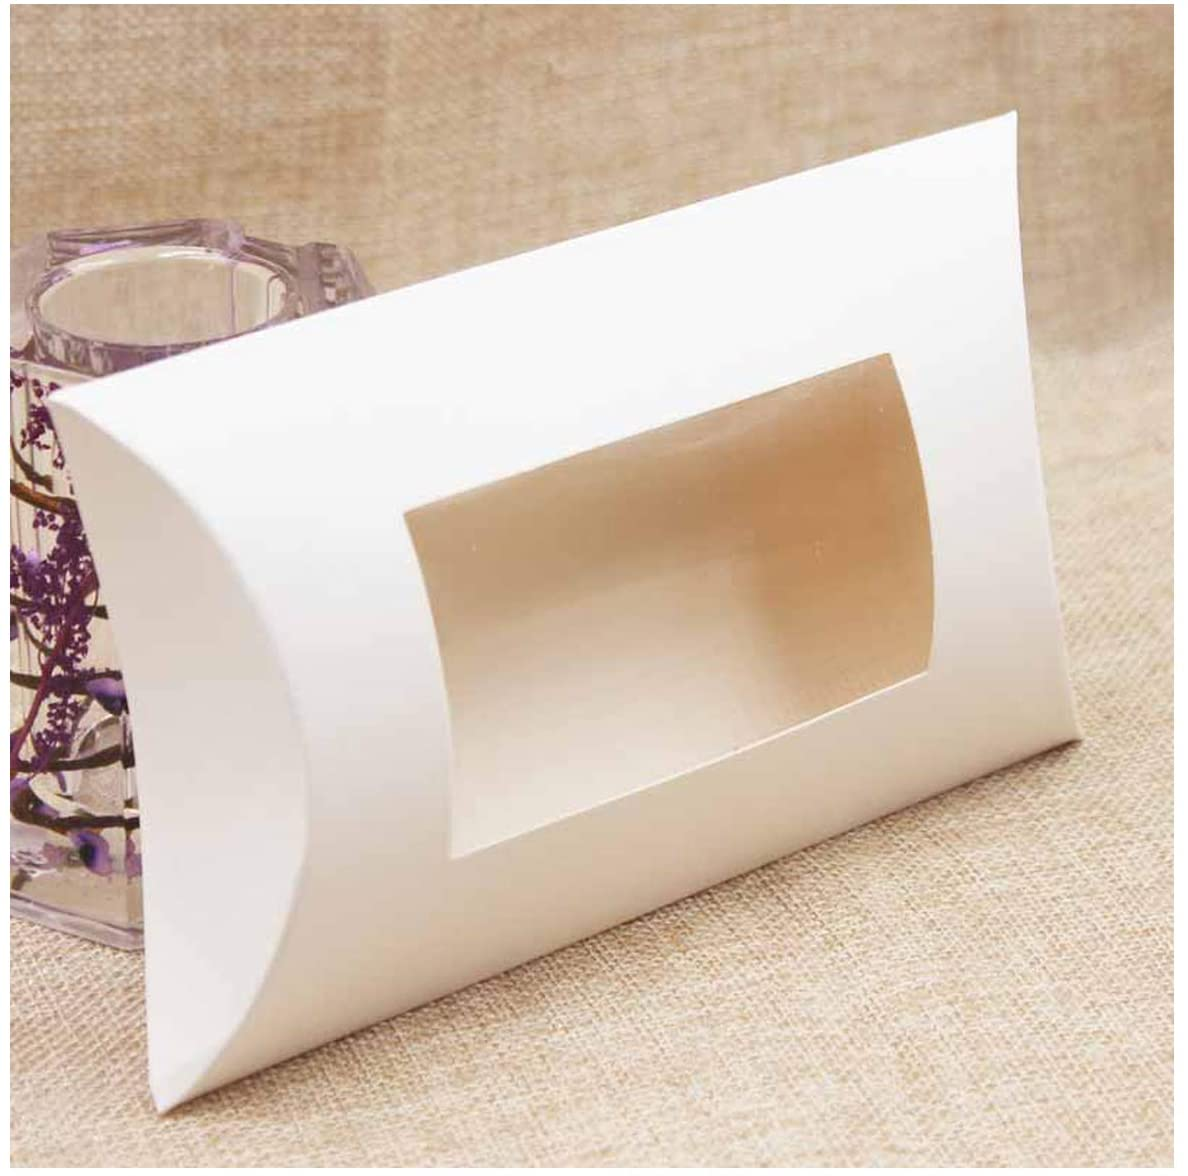 DIY Blank Paper Gift Box Multi Size Pillow Gift Box with Clear PVC Window Paper Window Box for Gift 10Pcs,Color As Pic,125X80X20Mm